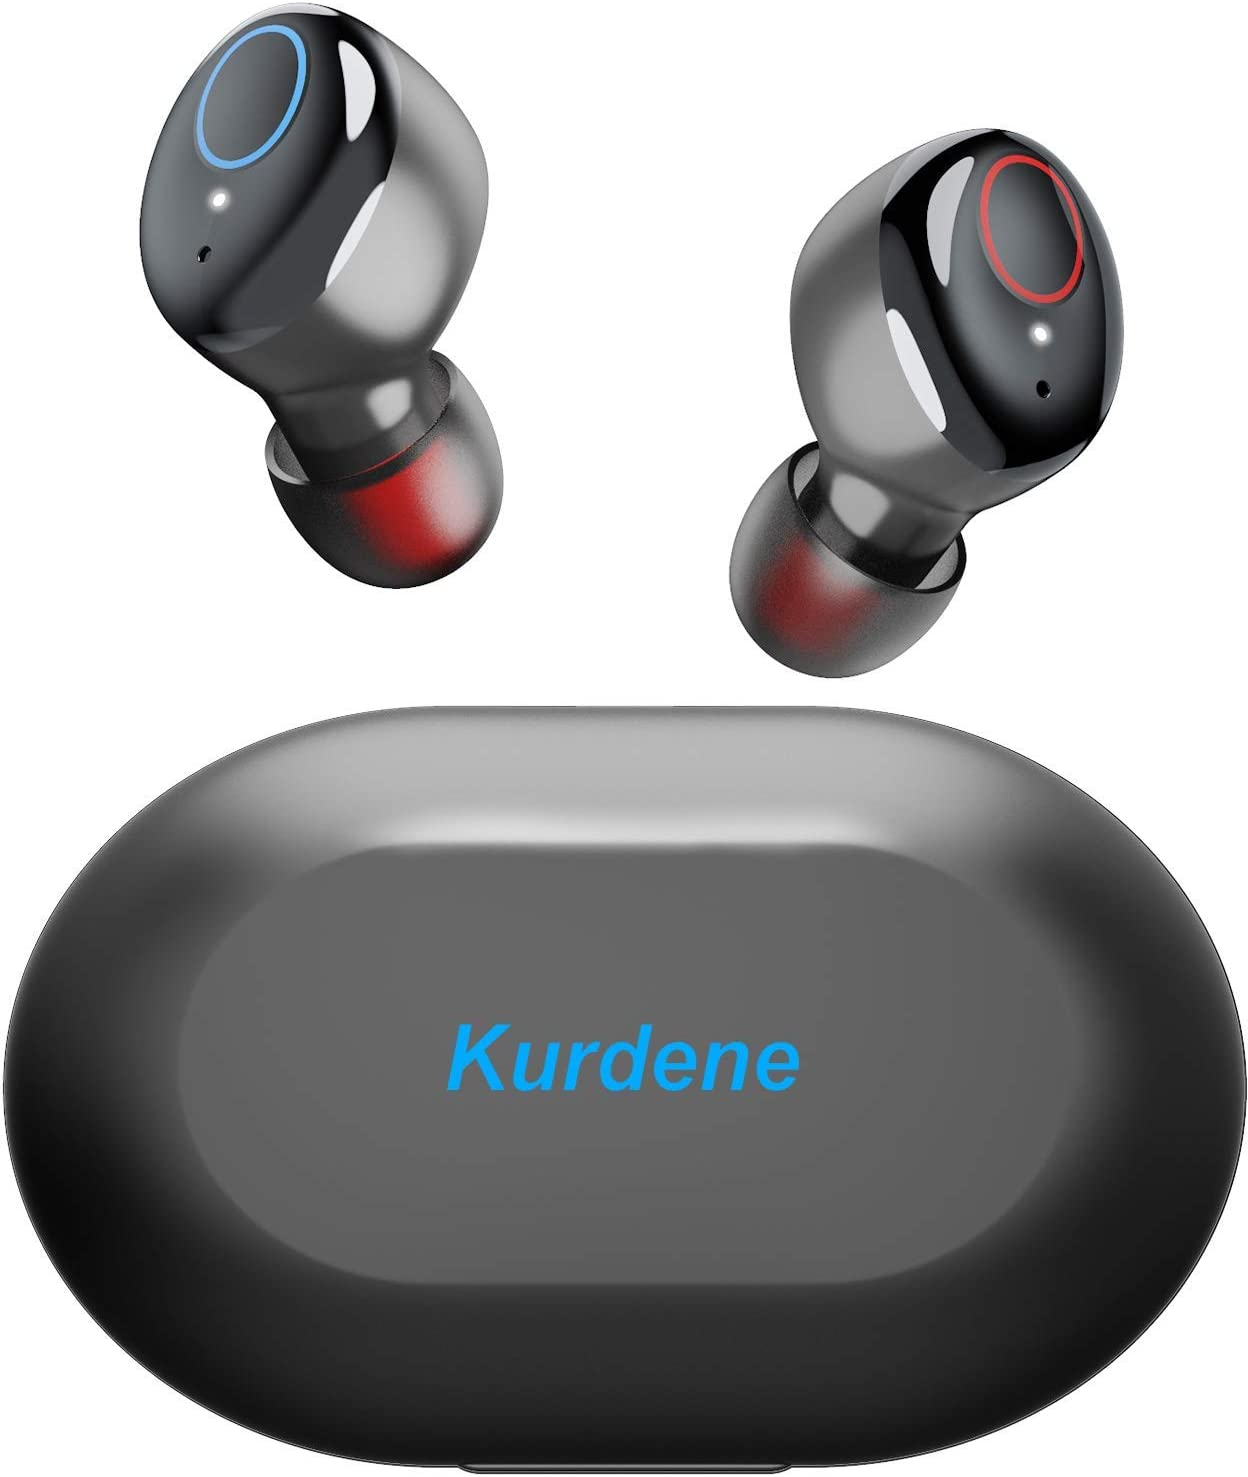 Kurdene Small Wireless Earbuds,Bluetooth Earbuds with Charging Case Bass Sounds IPX8 Waterproof...